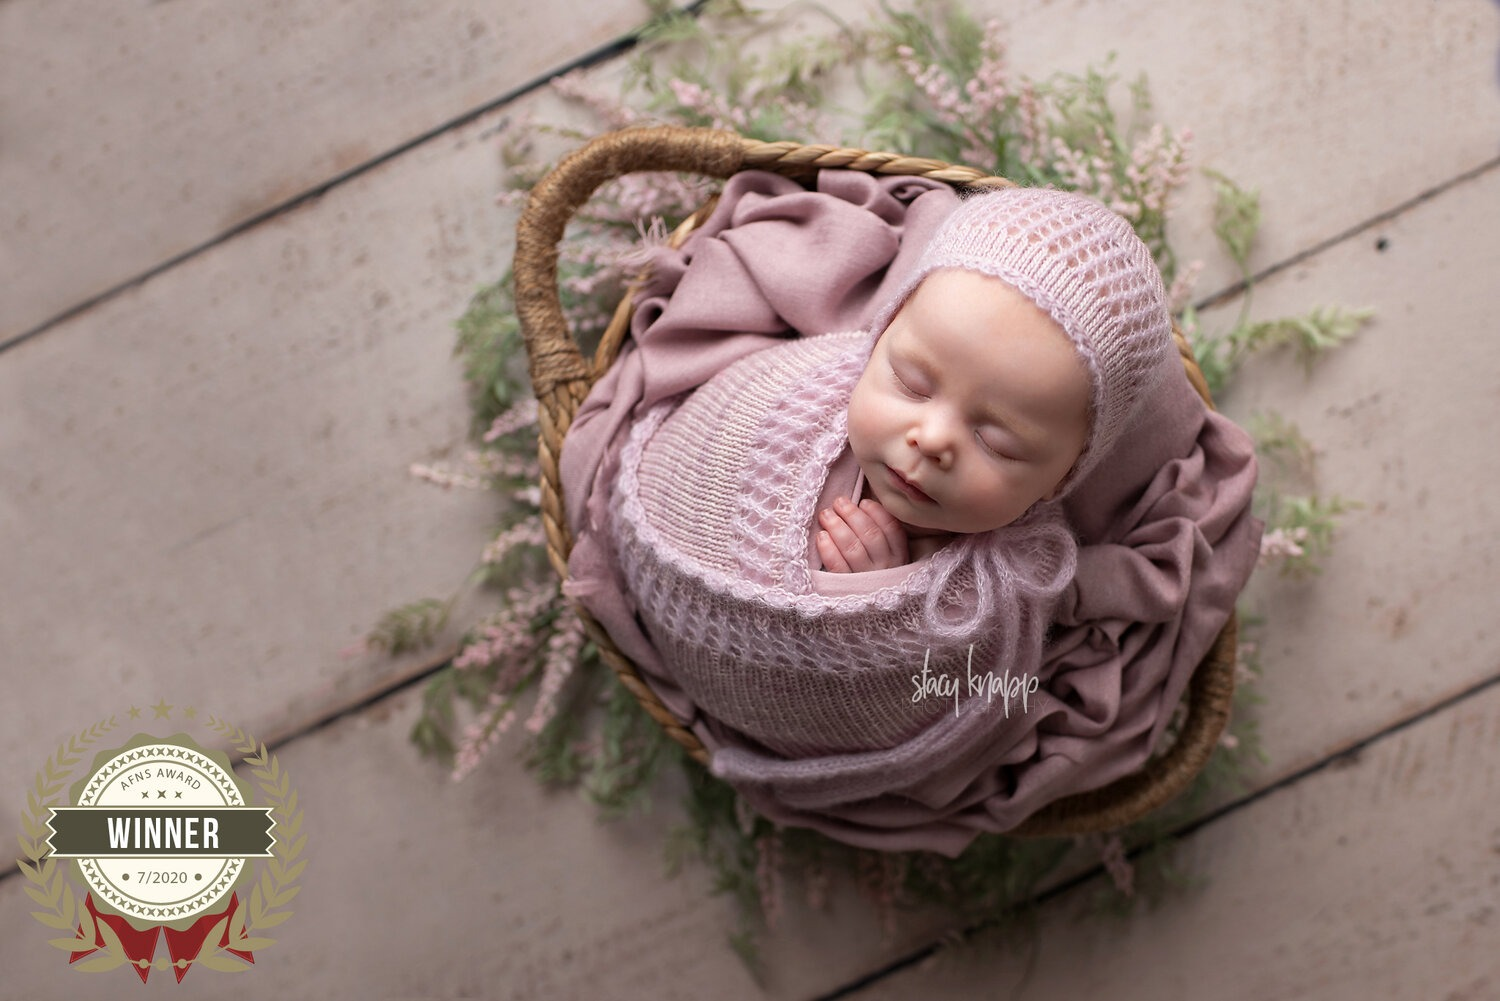 newborn baby wrapped in pink in a basket award winning